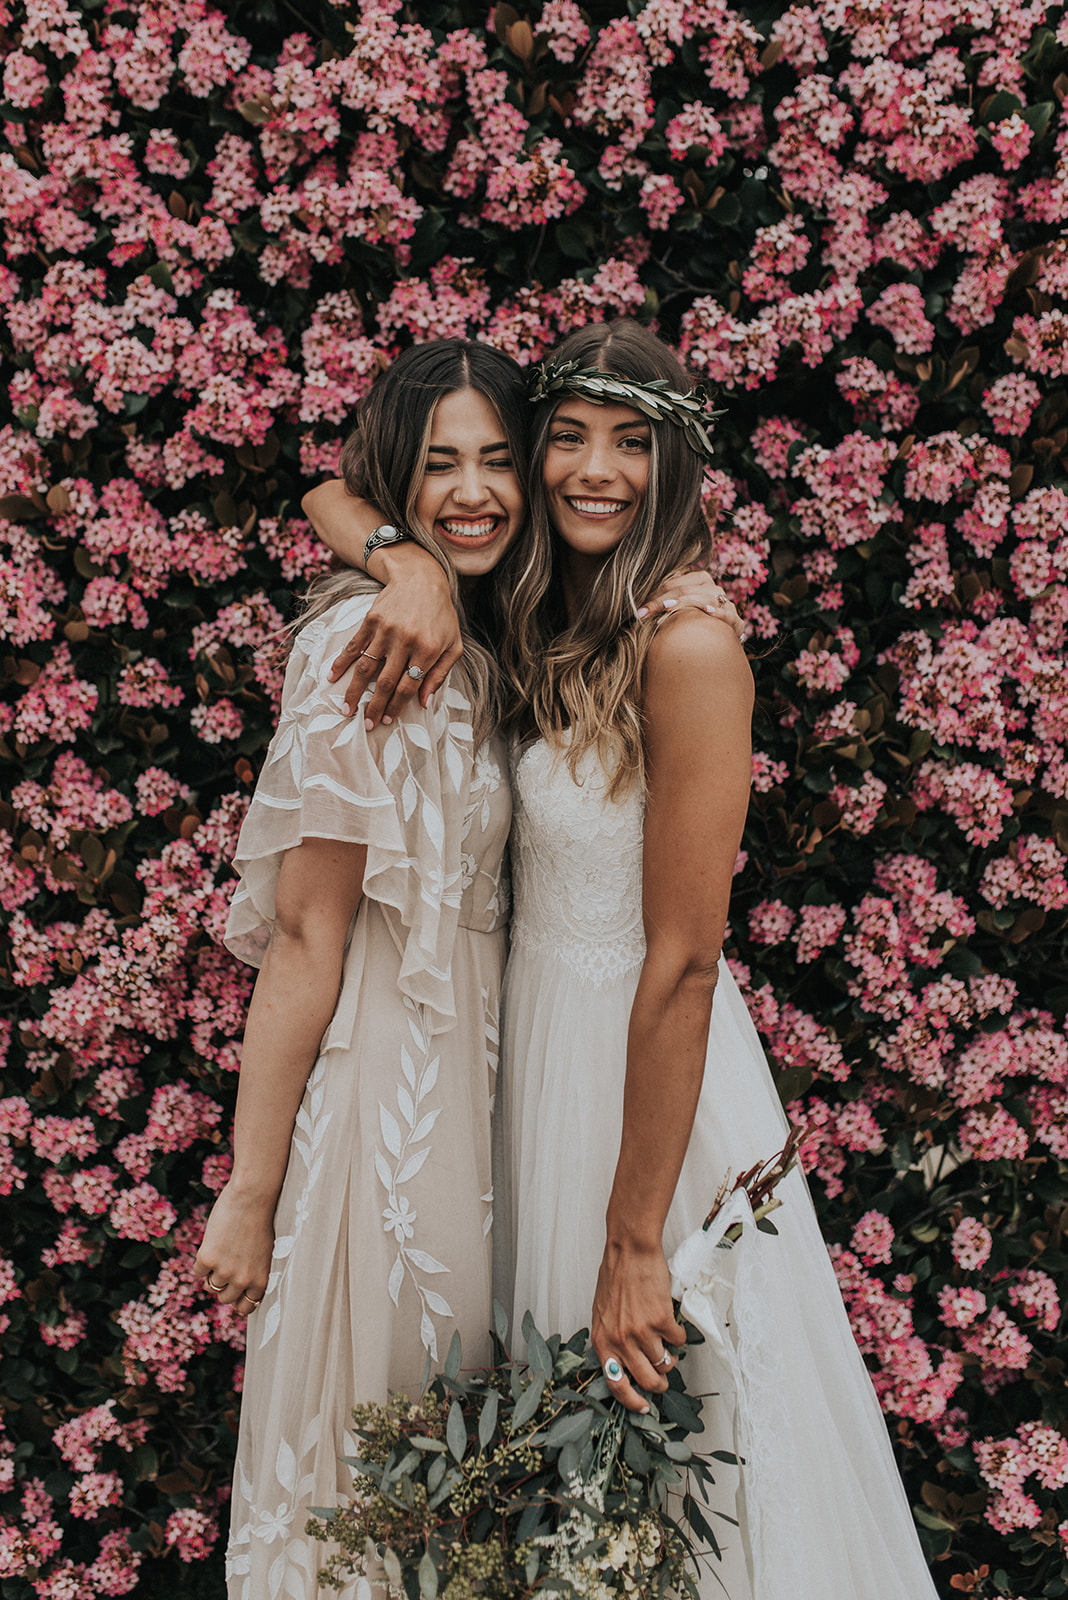 romantic netural wedding bridesmaid dresses ideas with floral backdrop